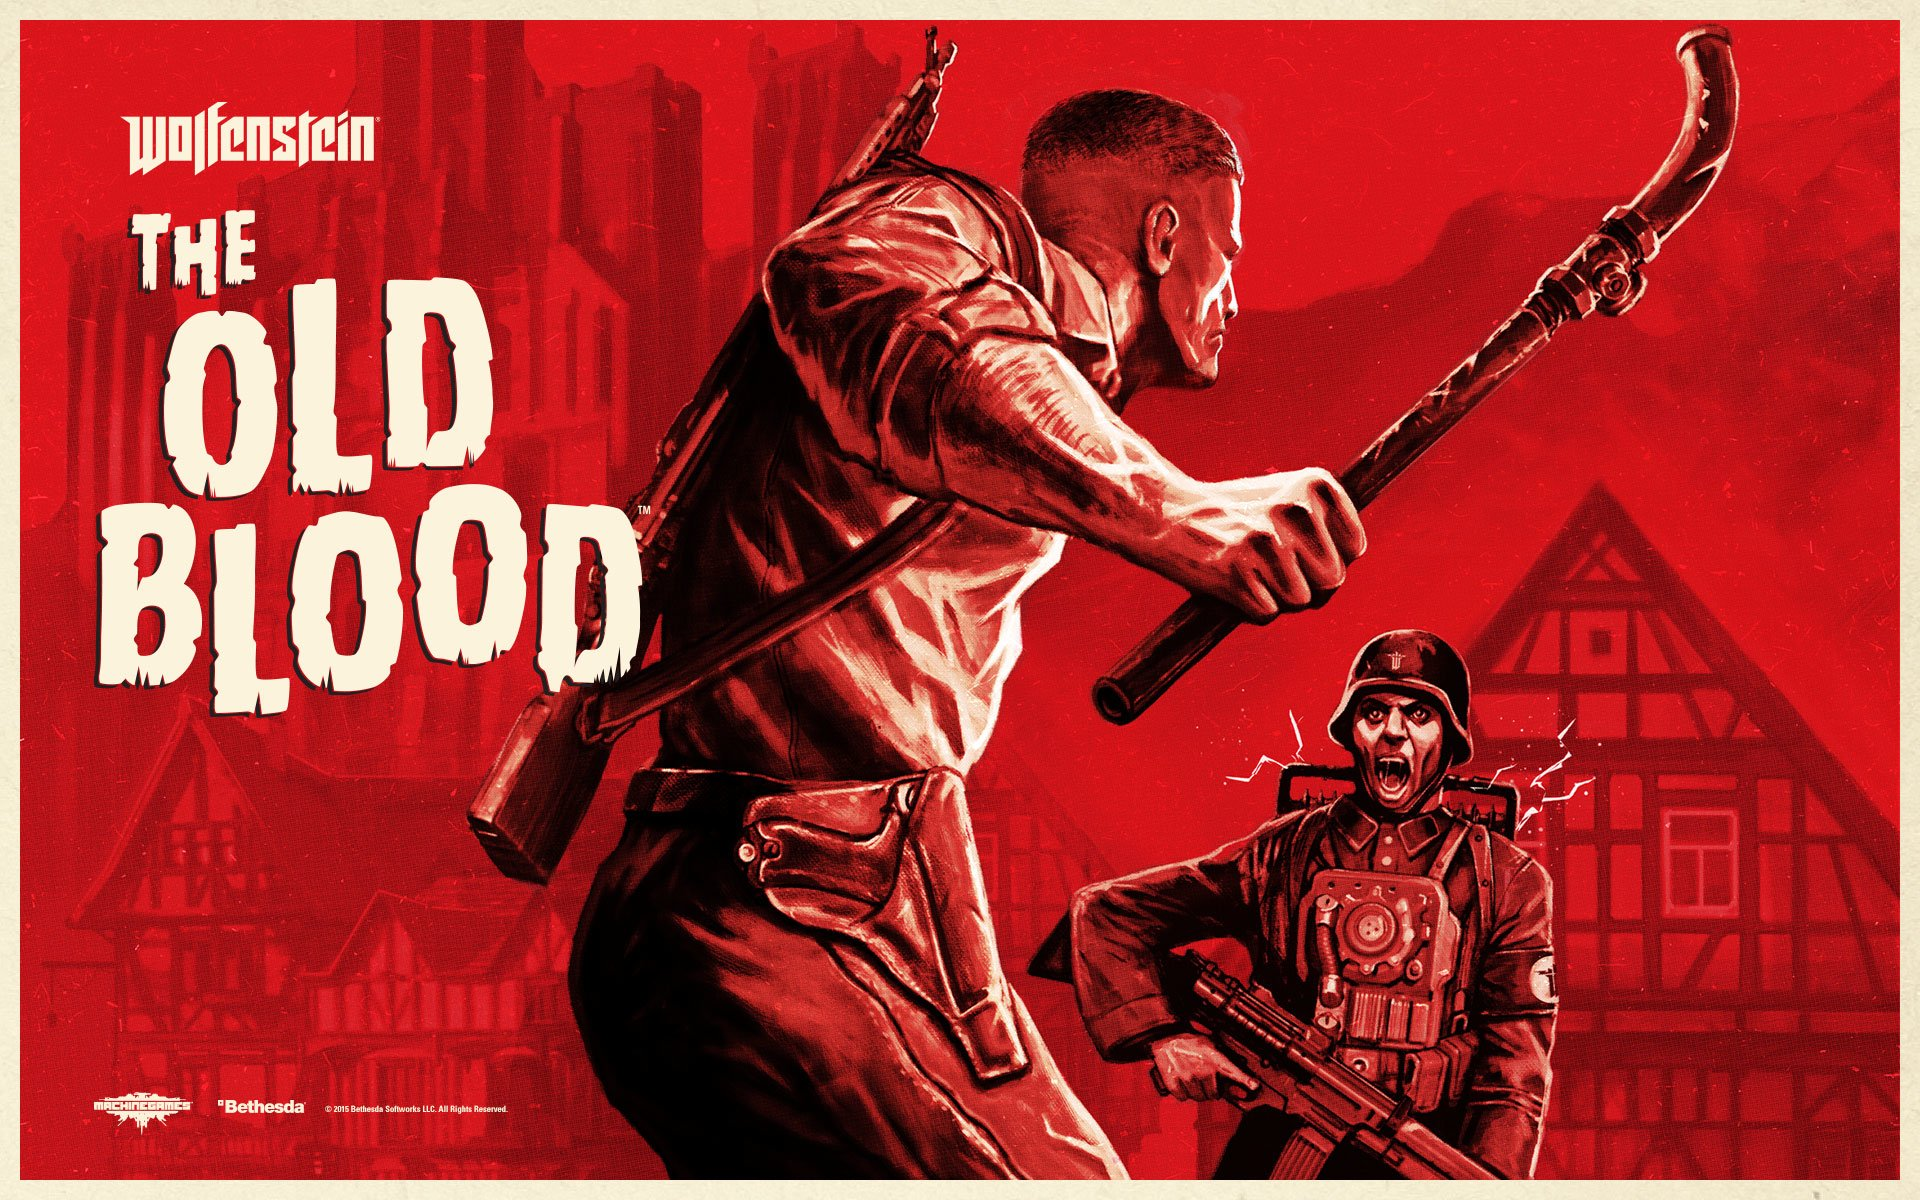 6 Wolfenstein The Old Blood Hd Wallpapers Background Images